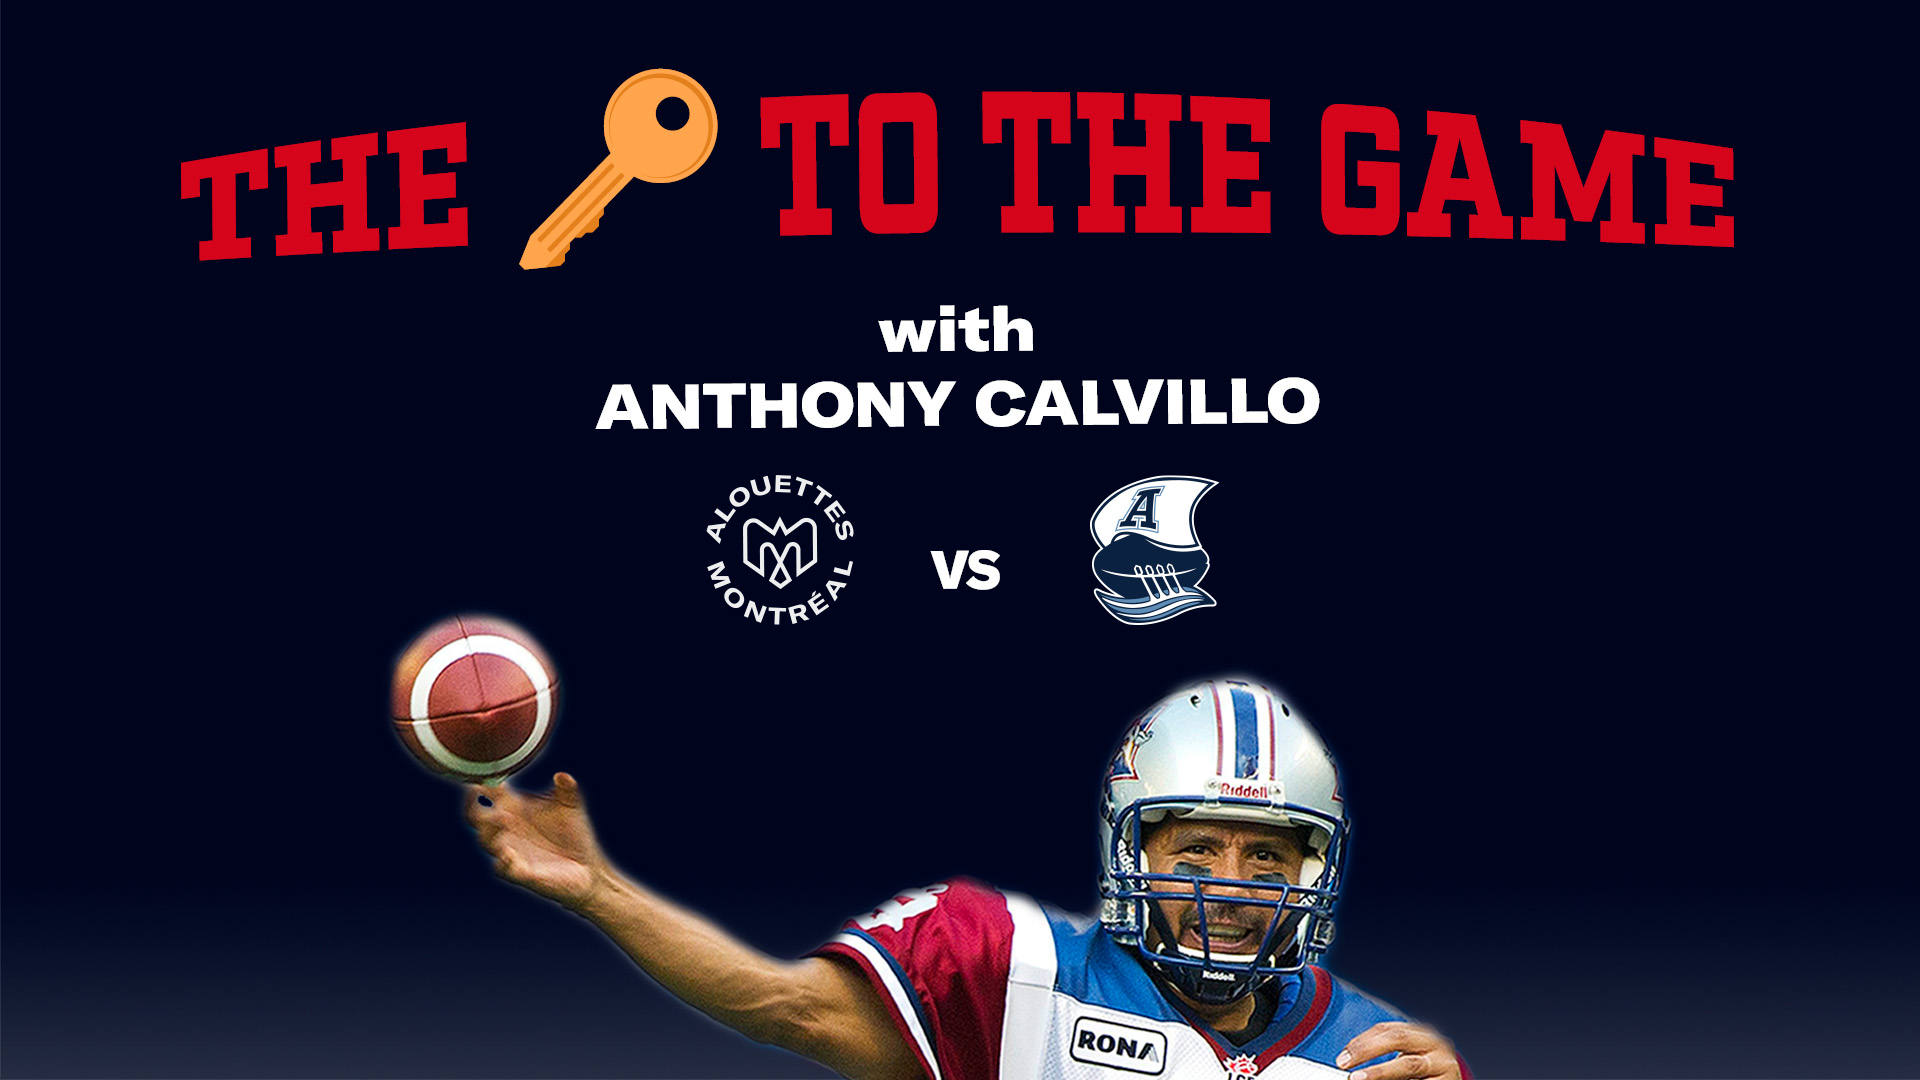 The keys to the game with Anthony Calvillo